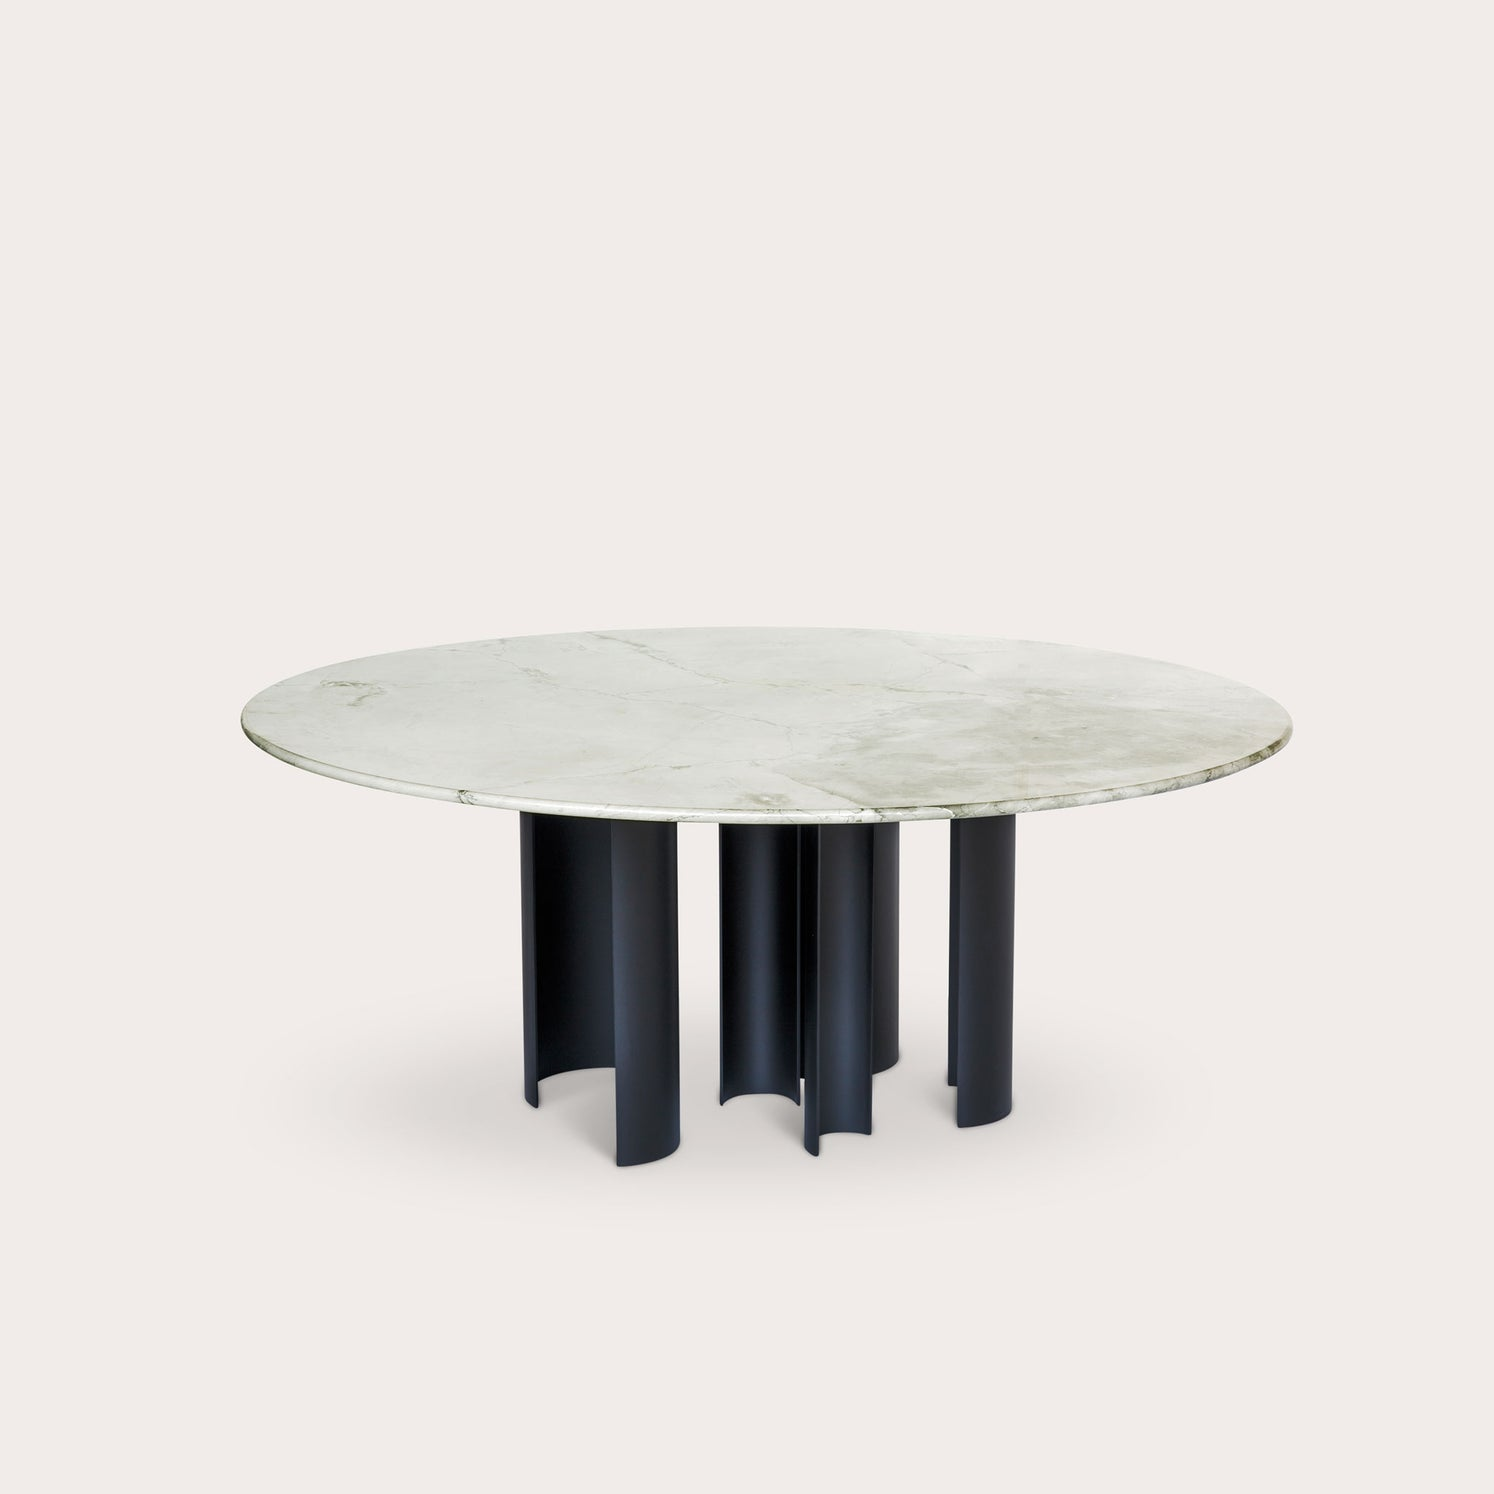 Phases Tables Simone Coste Designer Furniture Sku: 992-230-10079